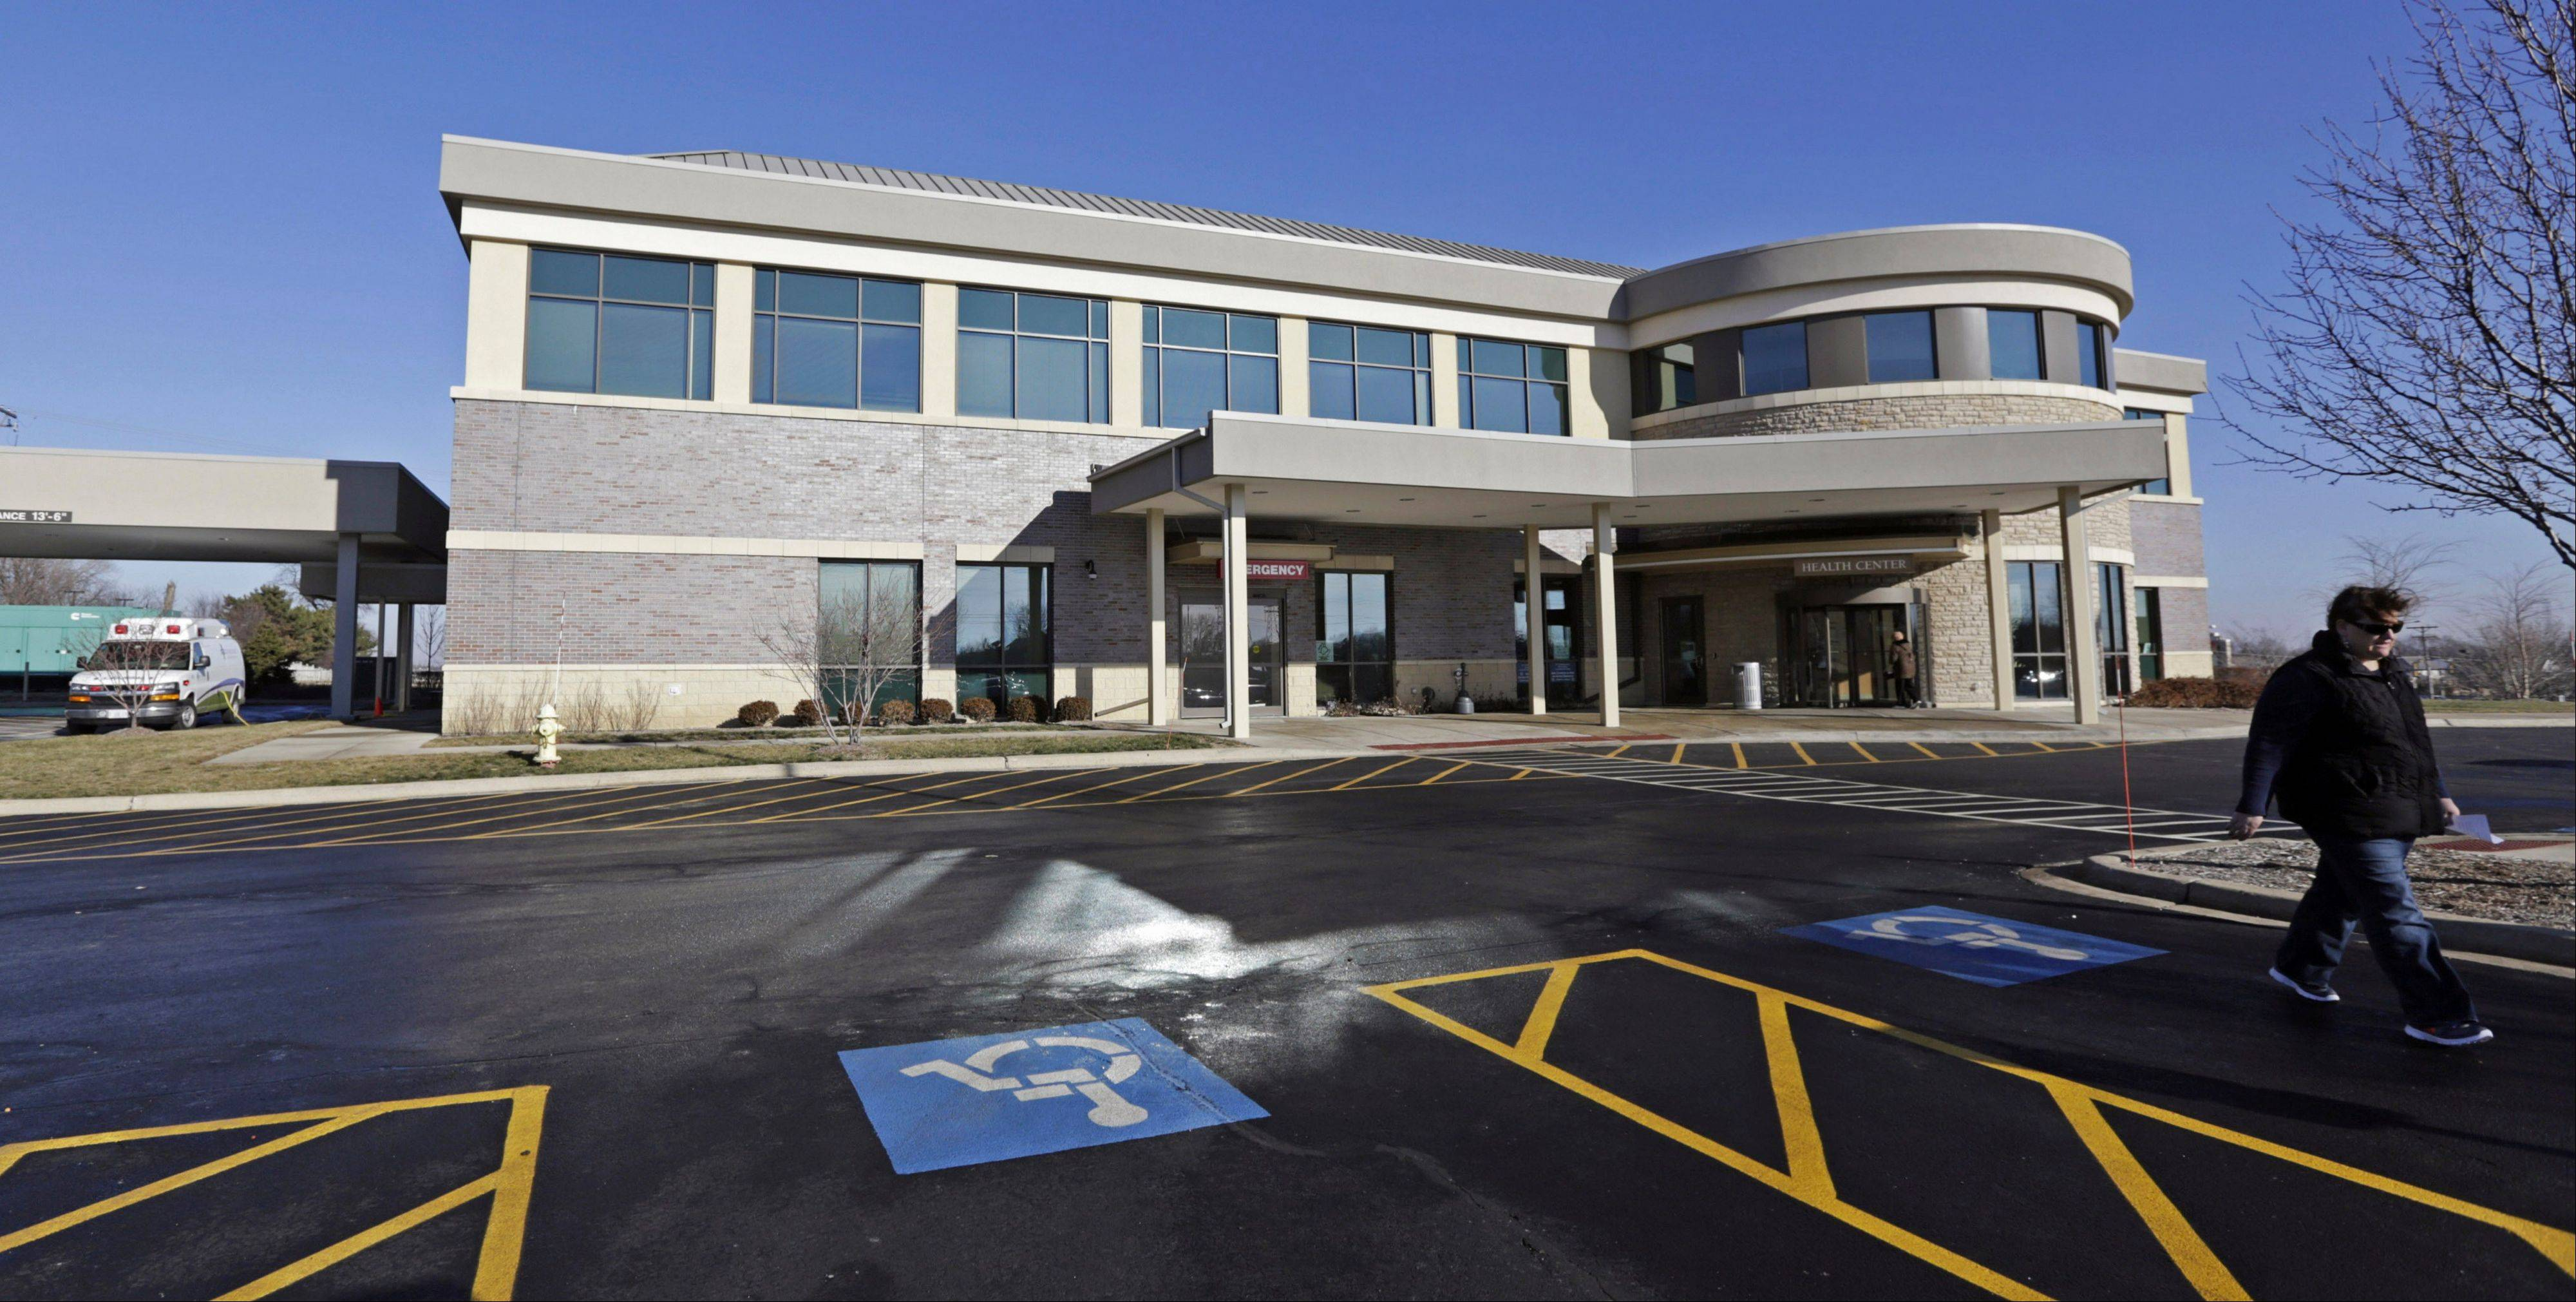 The Silver Cross Emergency Care Center in Homer Glen has been in operation since 2009. The number of U.S. hospitals with free-standing emergency departments has nearly doubled since 2005 but is still fewer than 300.